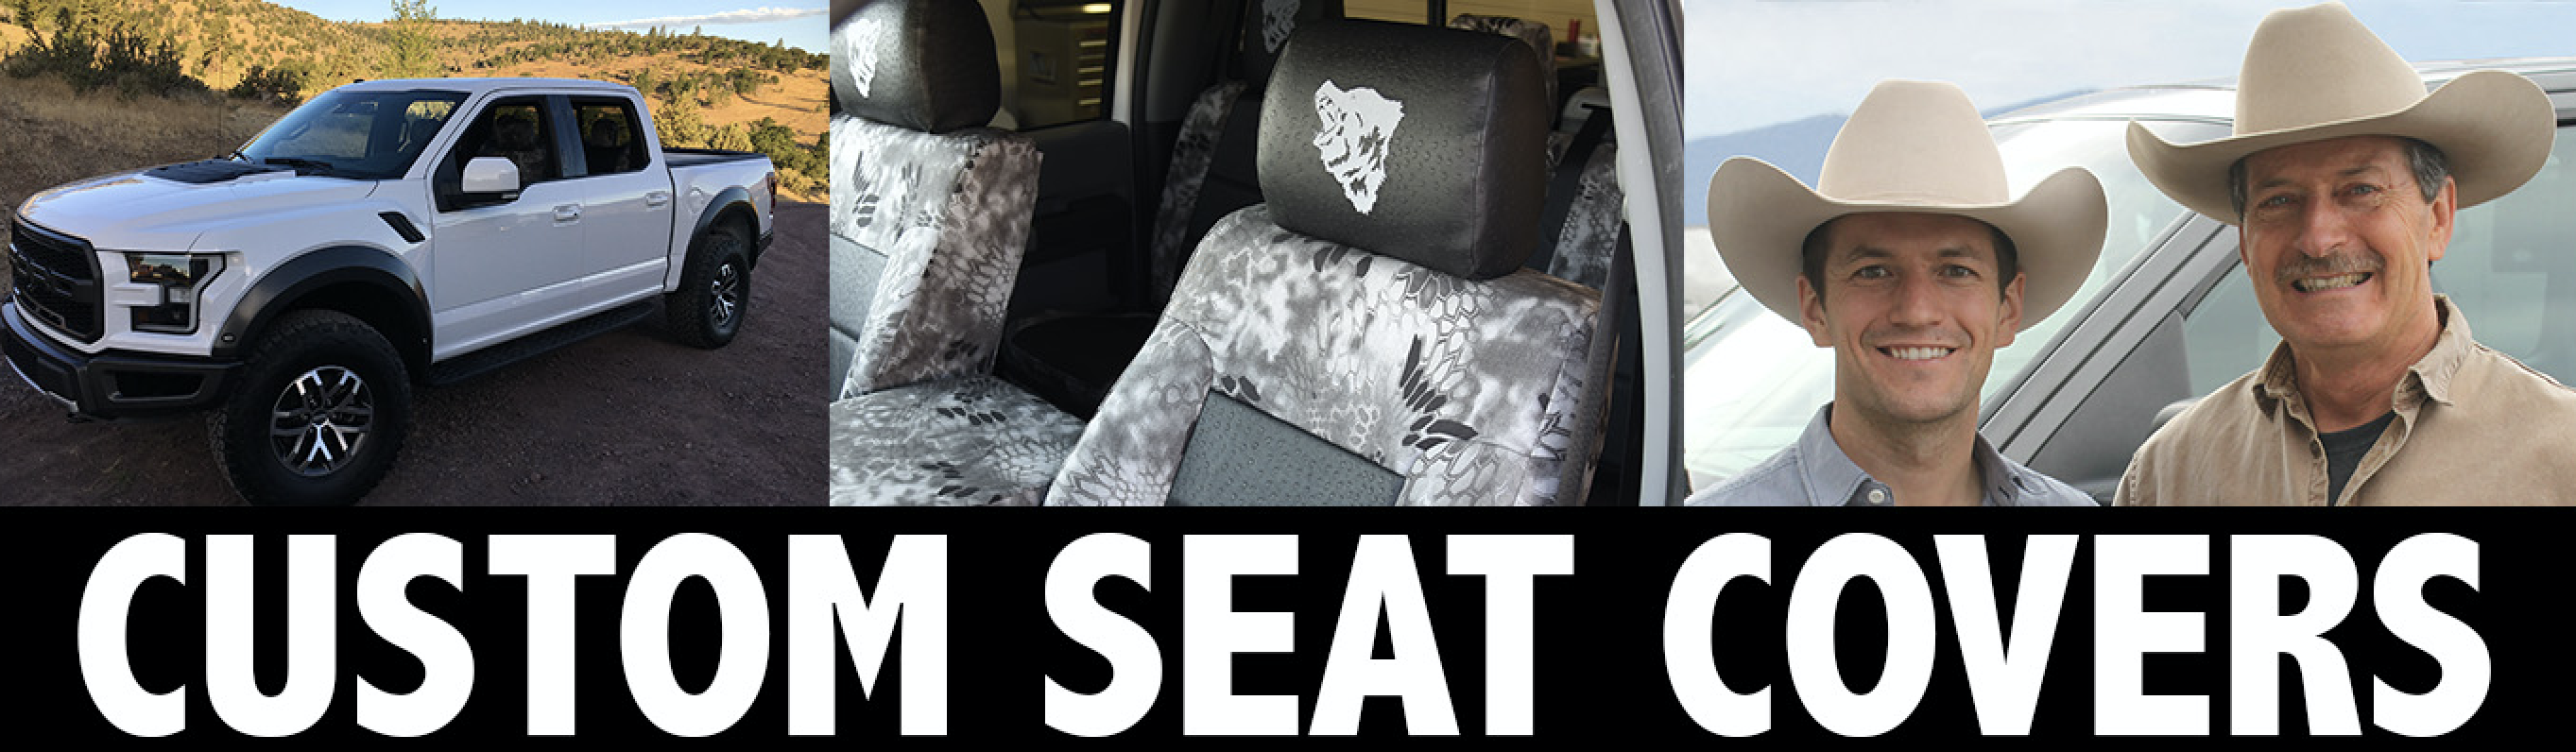 Wondrous Custom Camo Car Seat Covers Custom Leather Seat Covers Alphanode Cool Chair Designs And Ideas Alphanodeonline